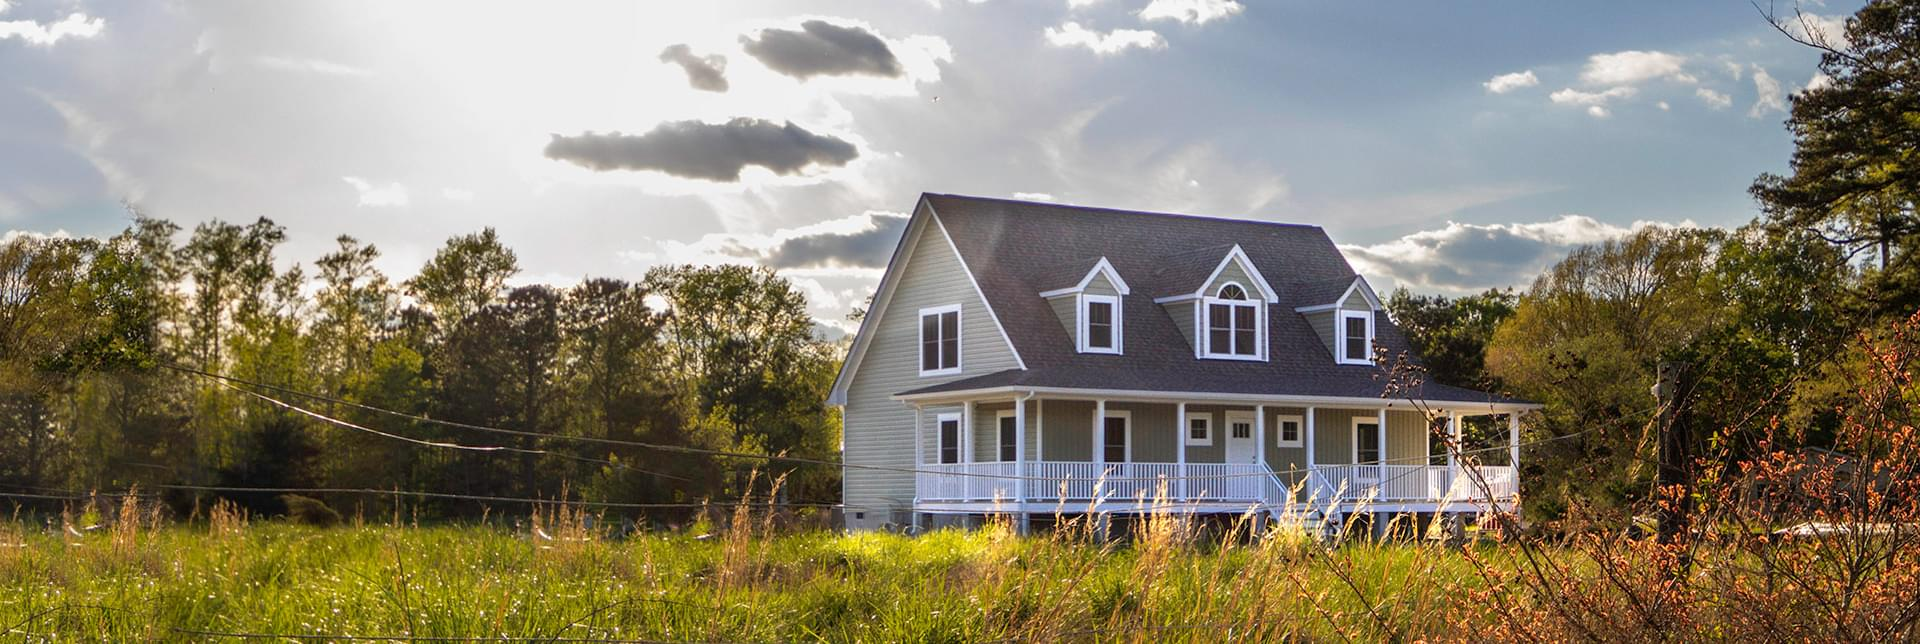 New Homes in Dare County NC